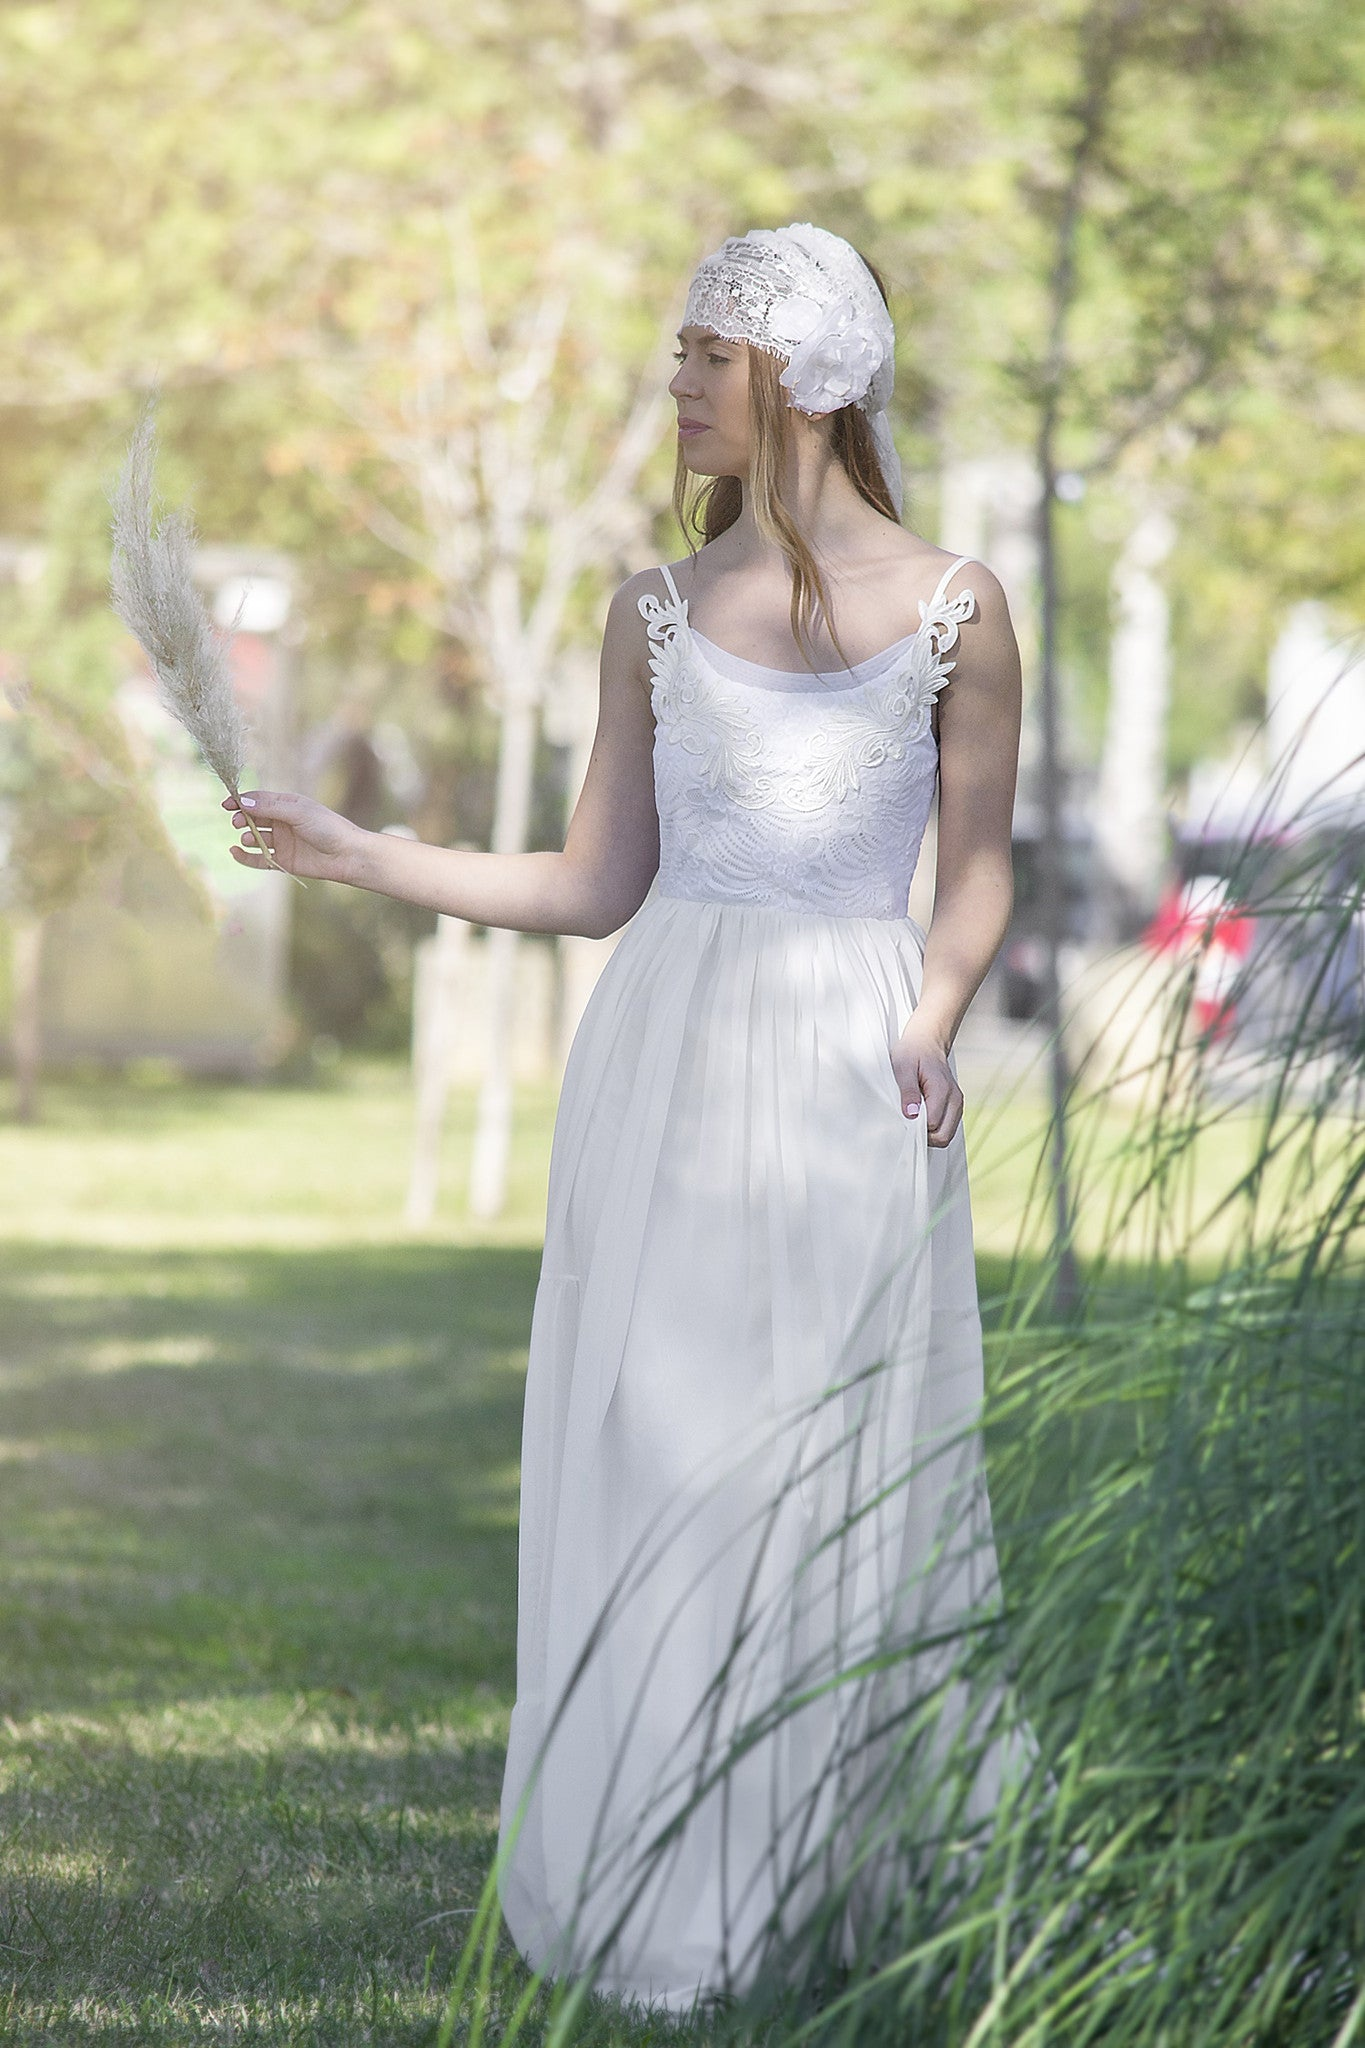 Abelie Handmade Bridal Dress